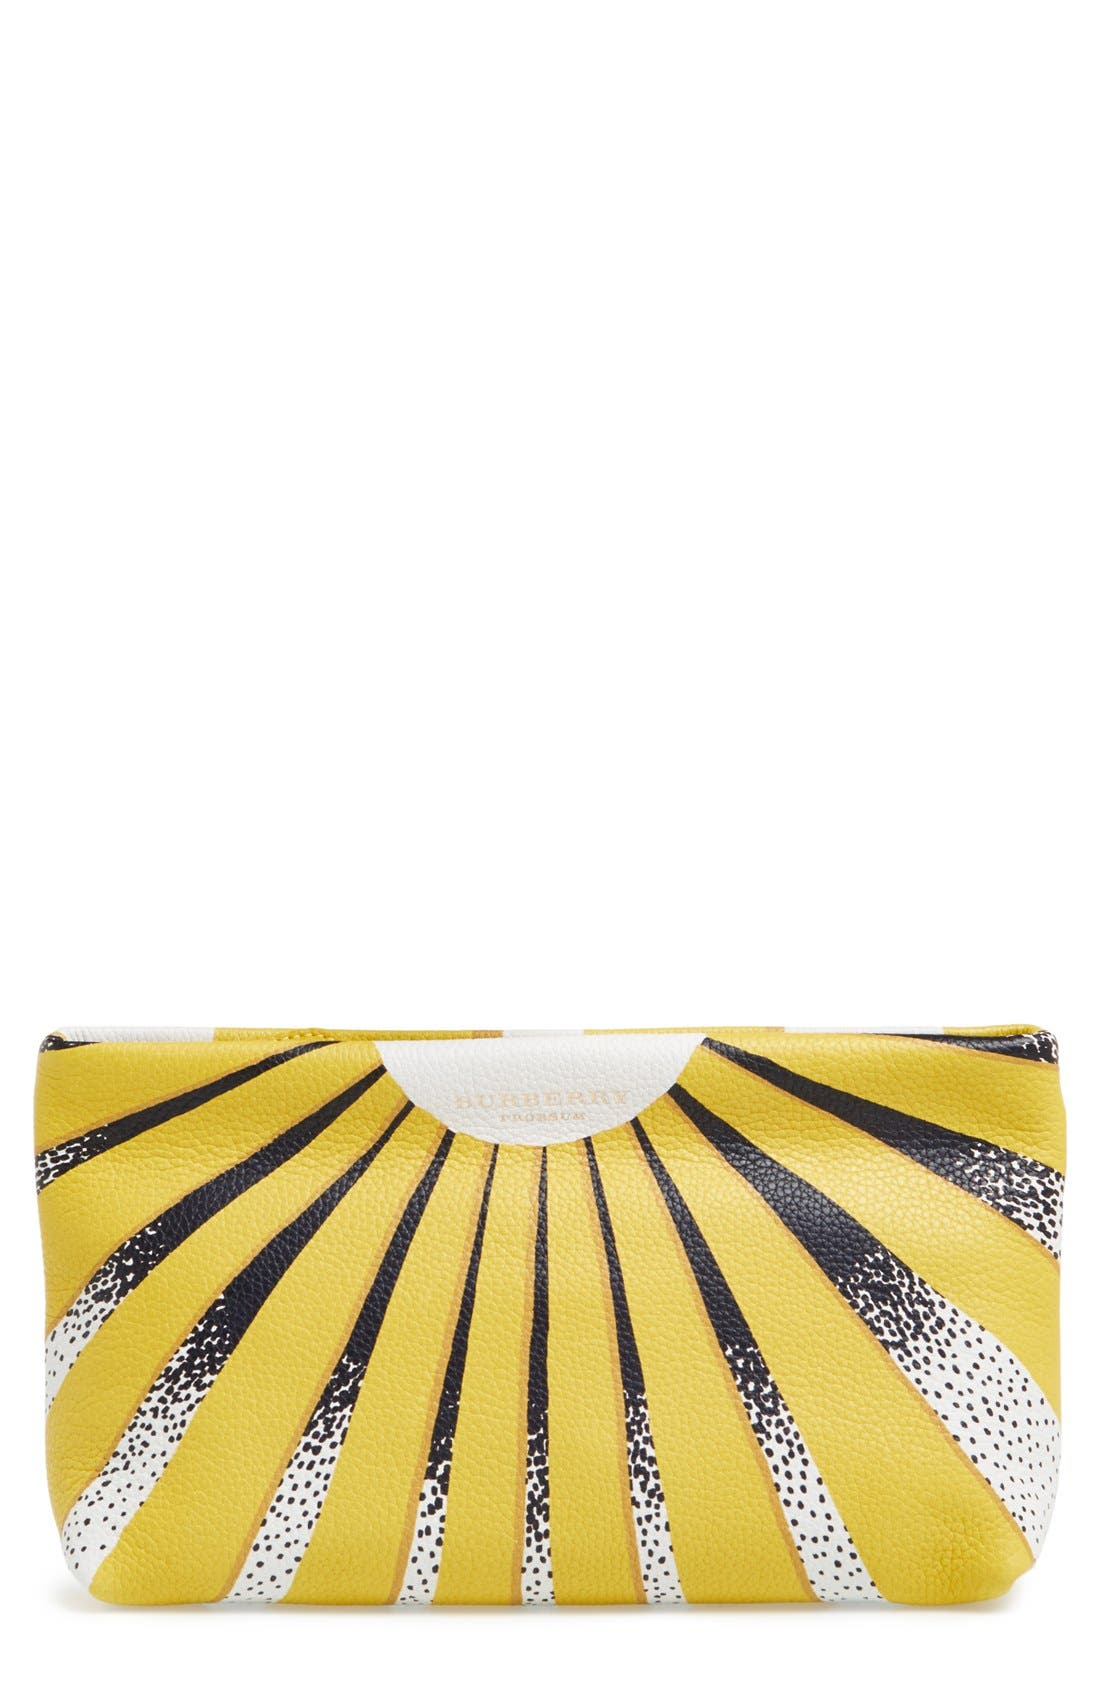 Alternate Image 1 Selected - Burberry Leather Clutch